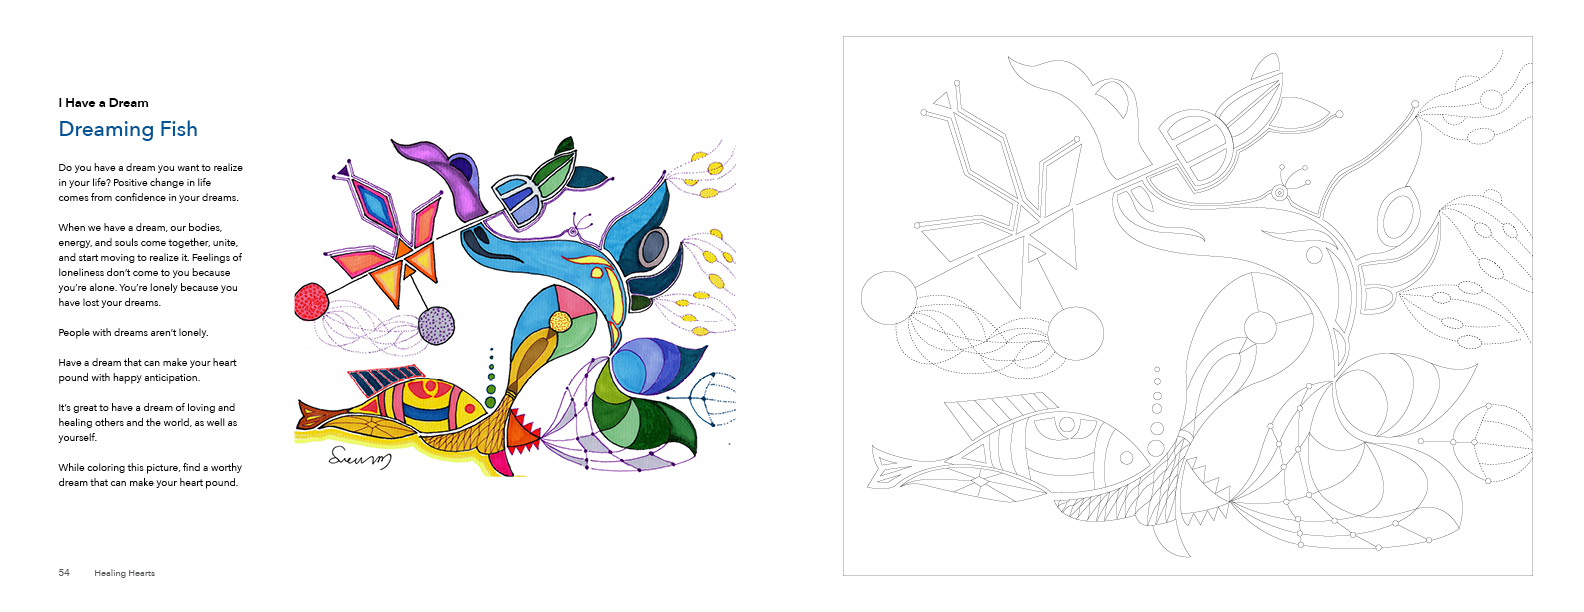 HomeAll ProductsBooksSelf ImprovementHealing Hearts A Coloring Book For Letting Go And Starting Over